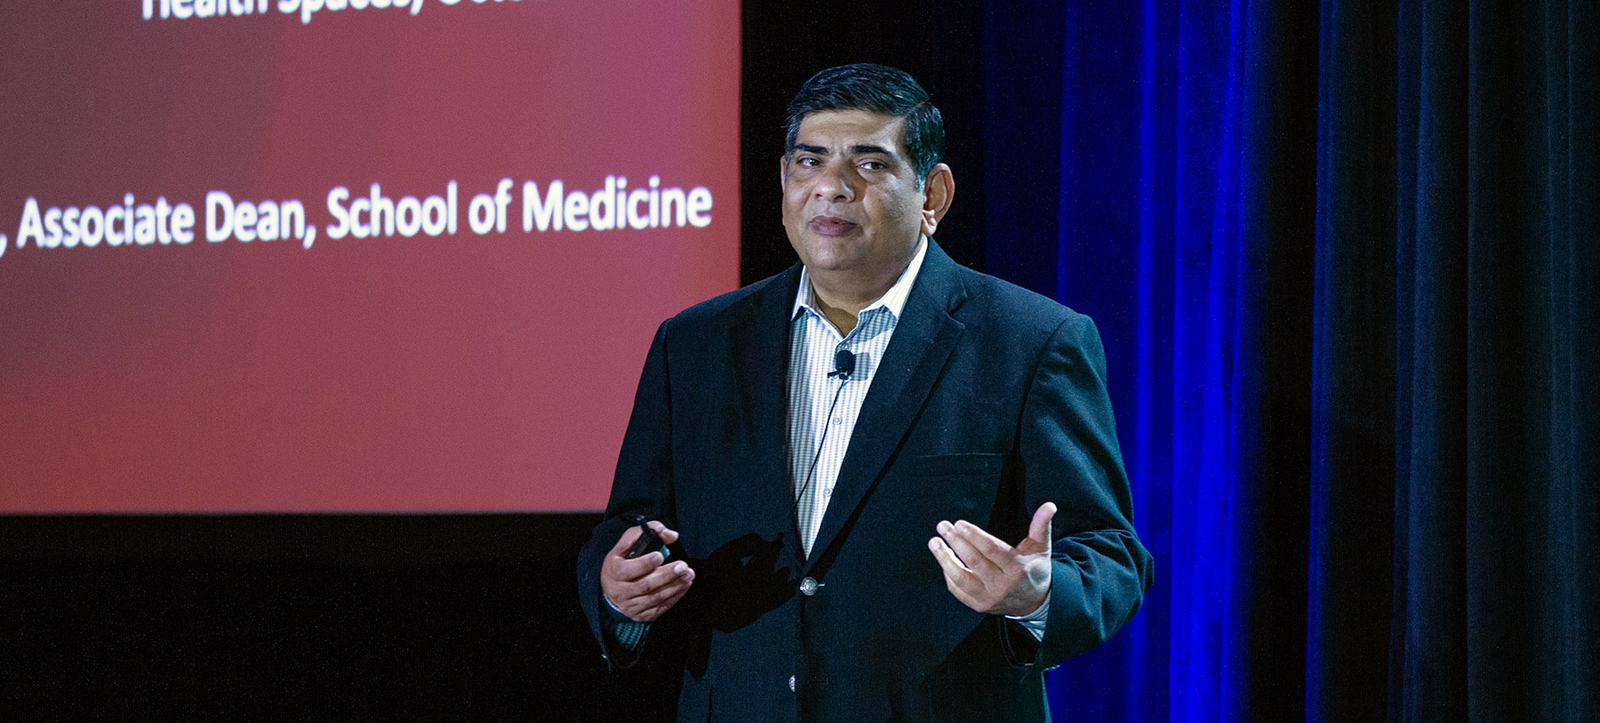 Stanford Medicine is Changing the Physician Workplace Paradigm